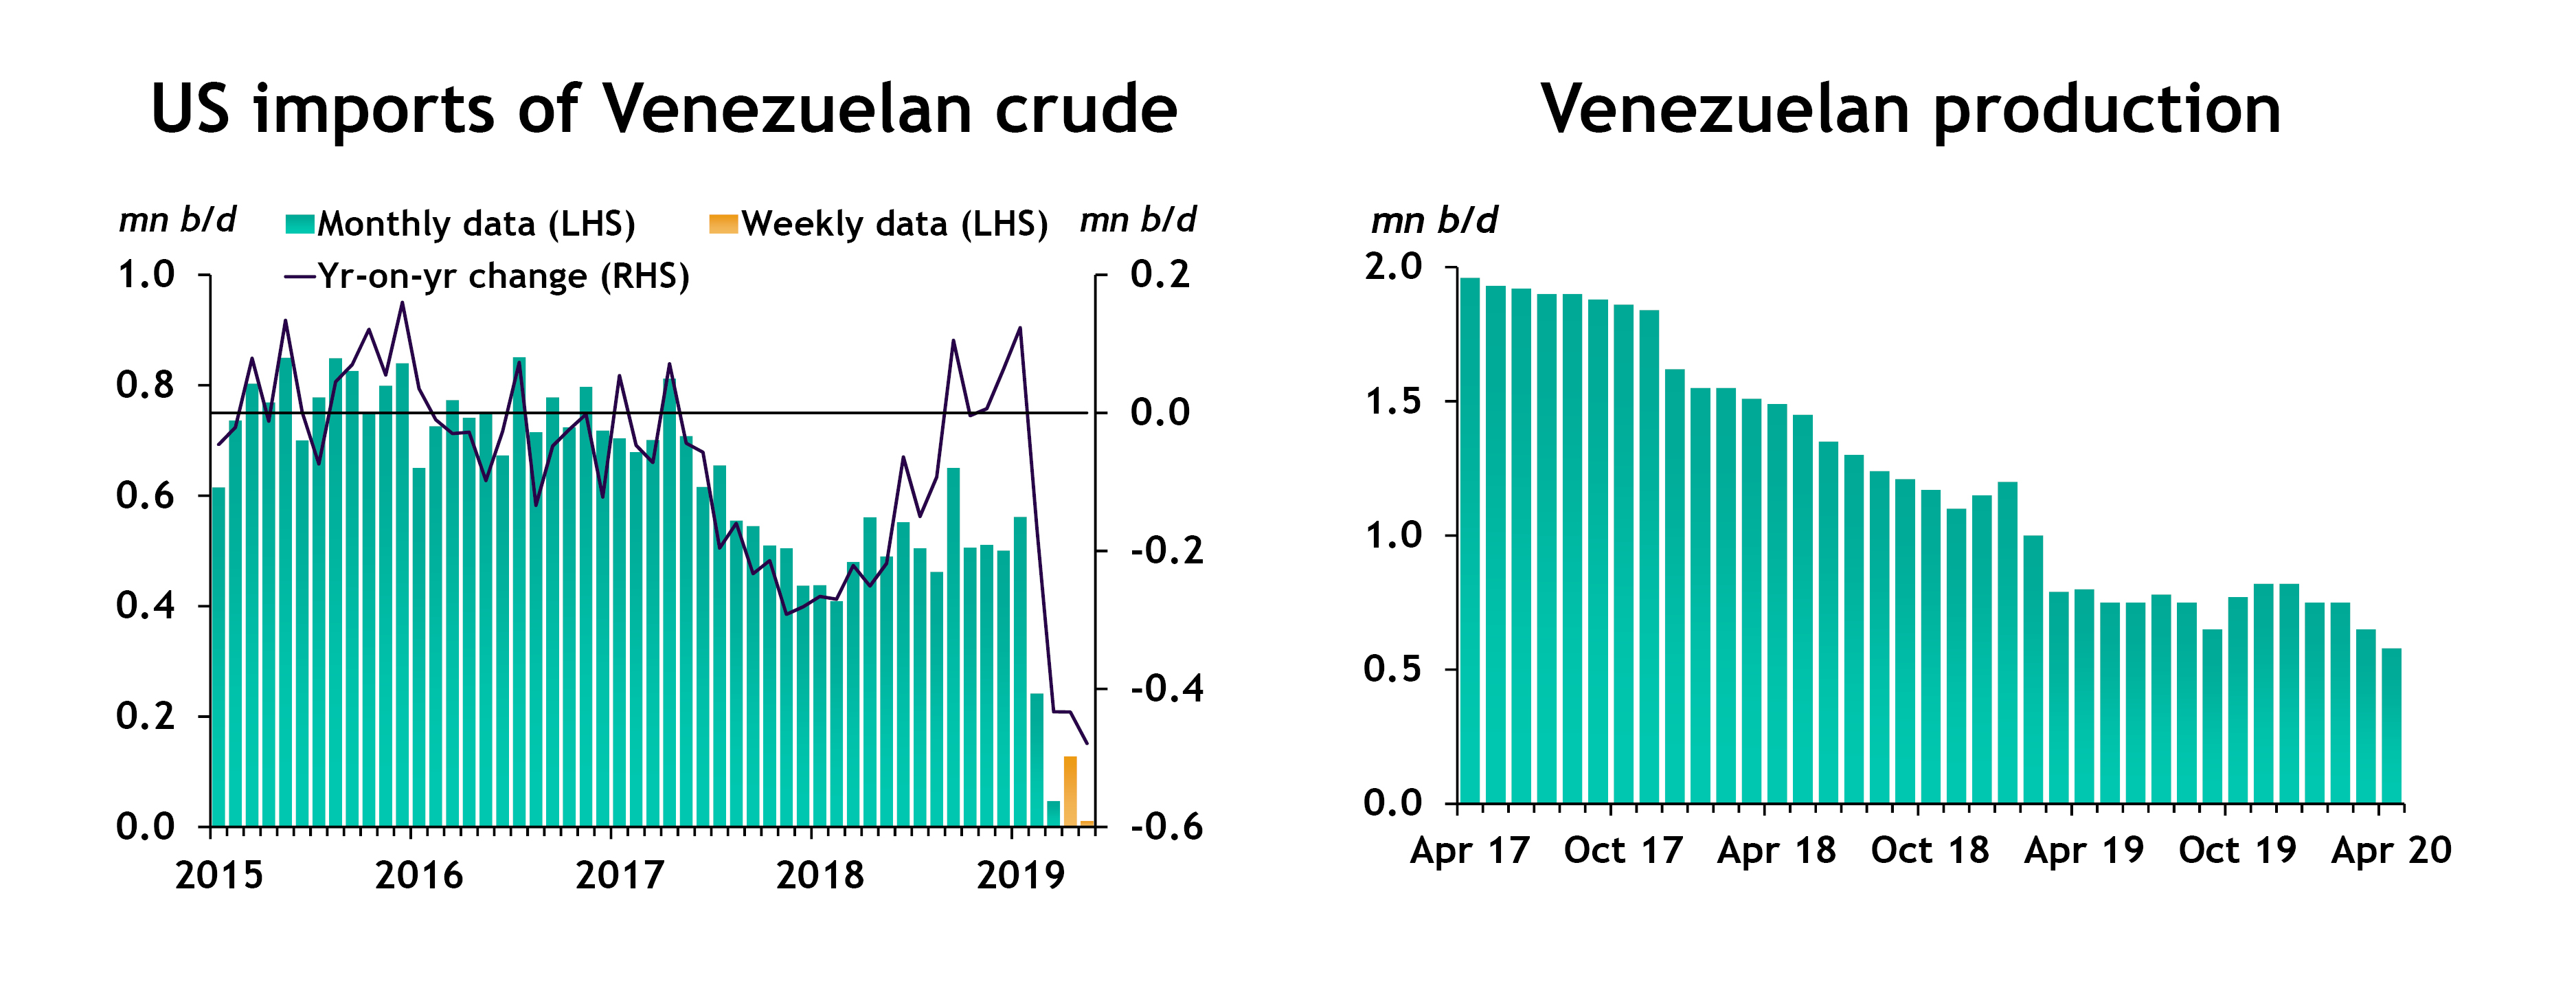 US imports of Venezuelan crude; Venezuelan production